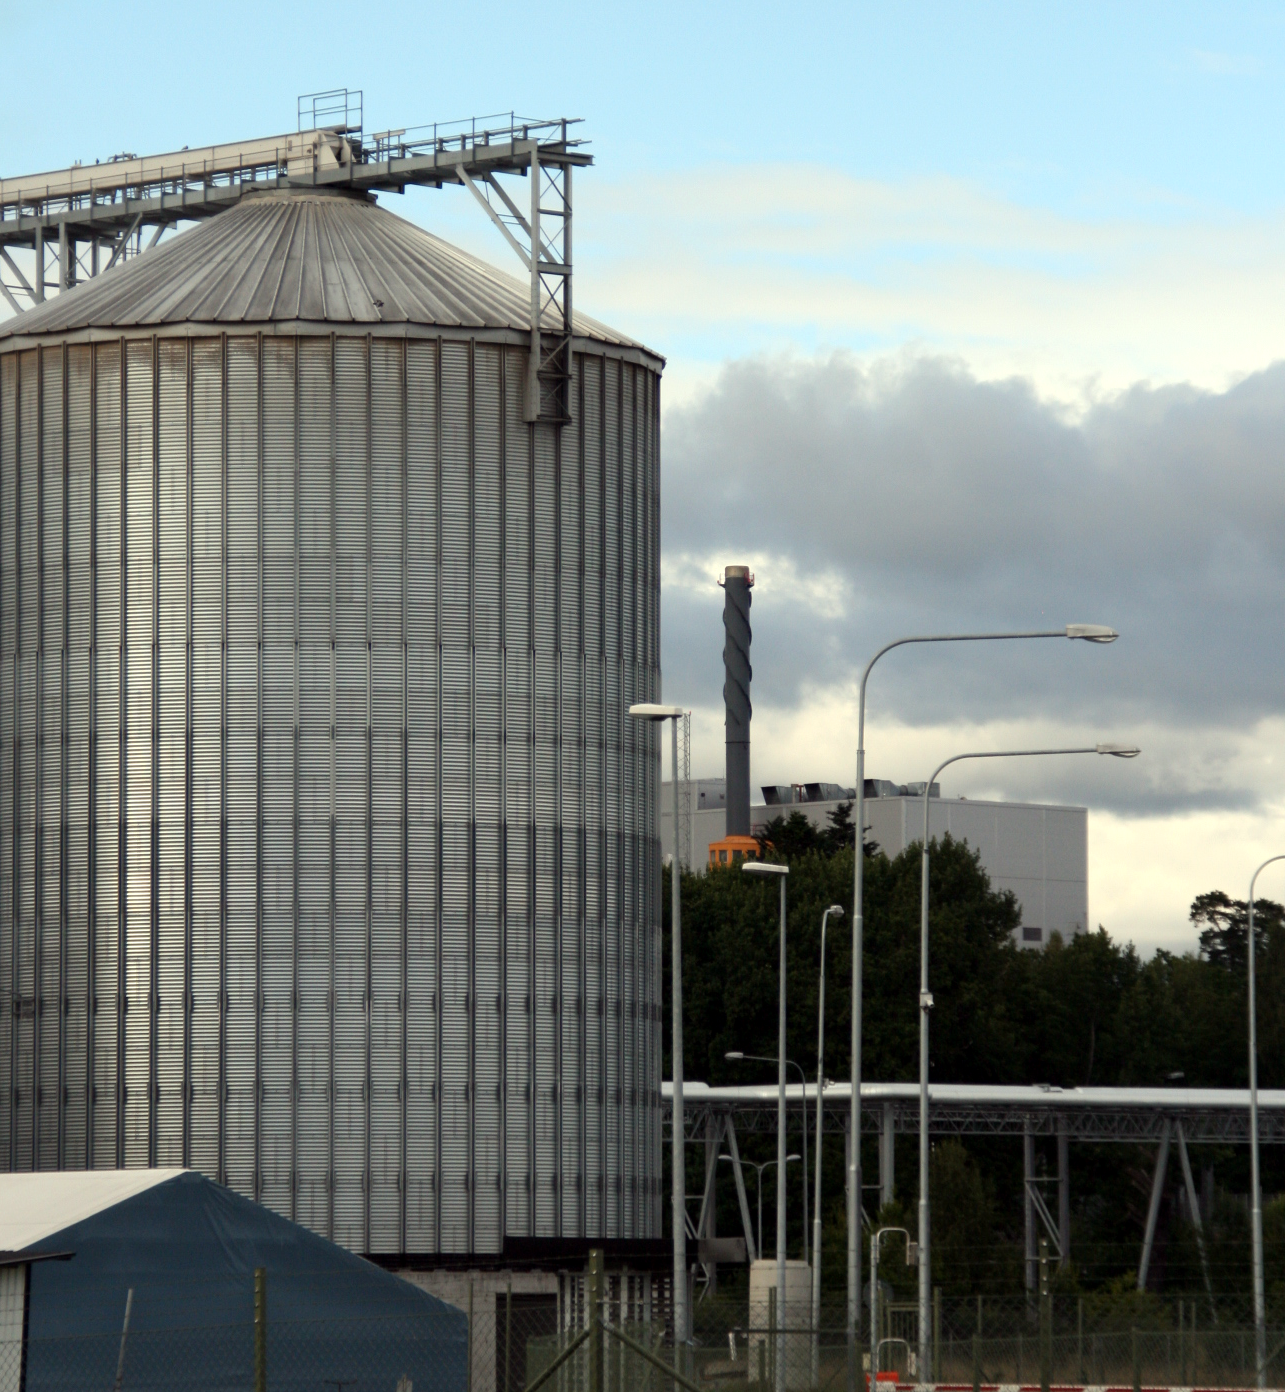 This ethanol plant uses waste steam from a nearby incinerator